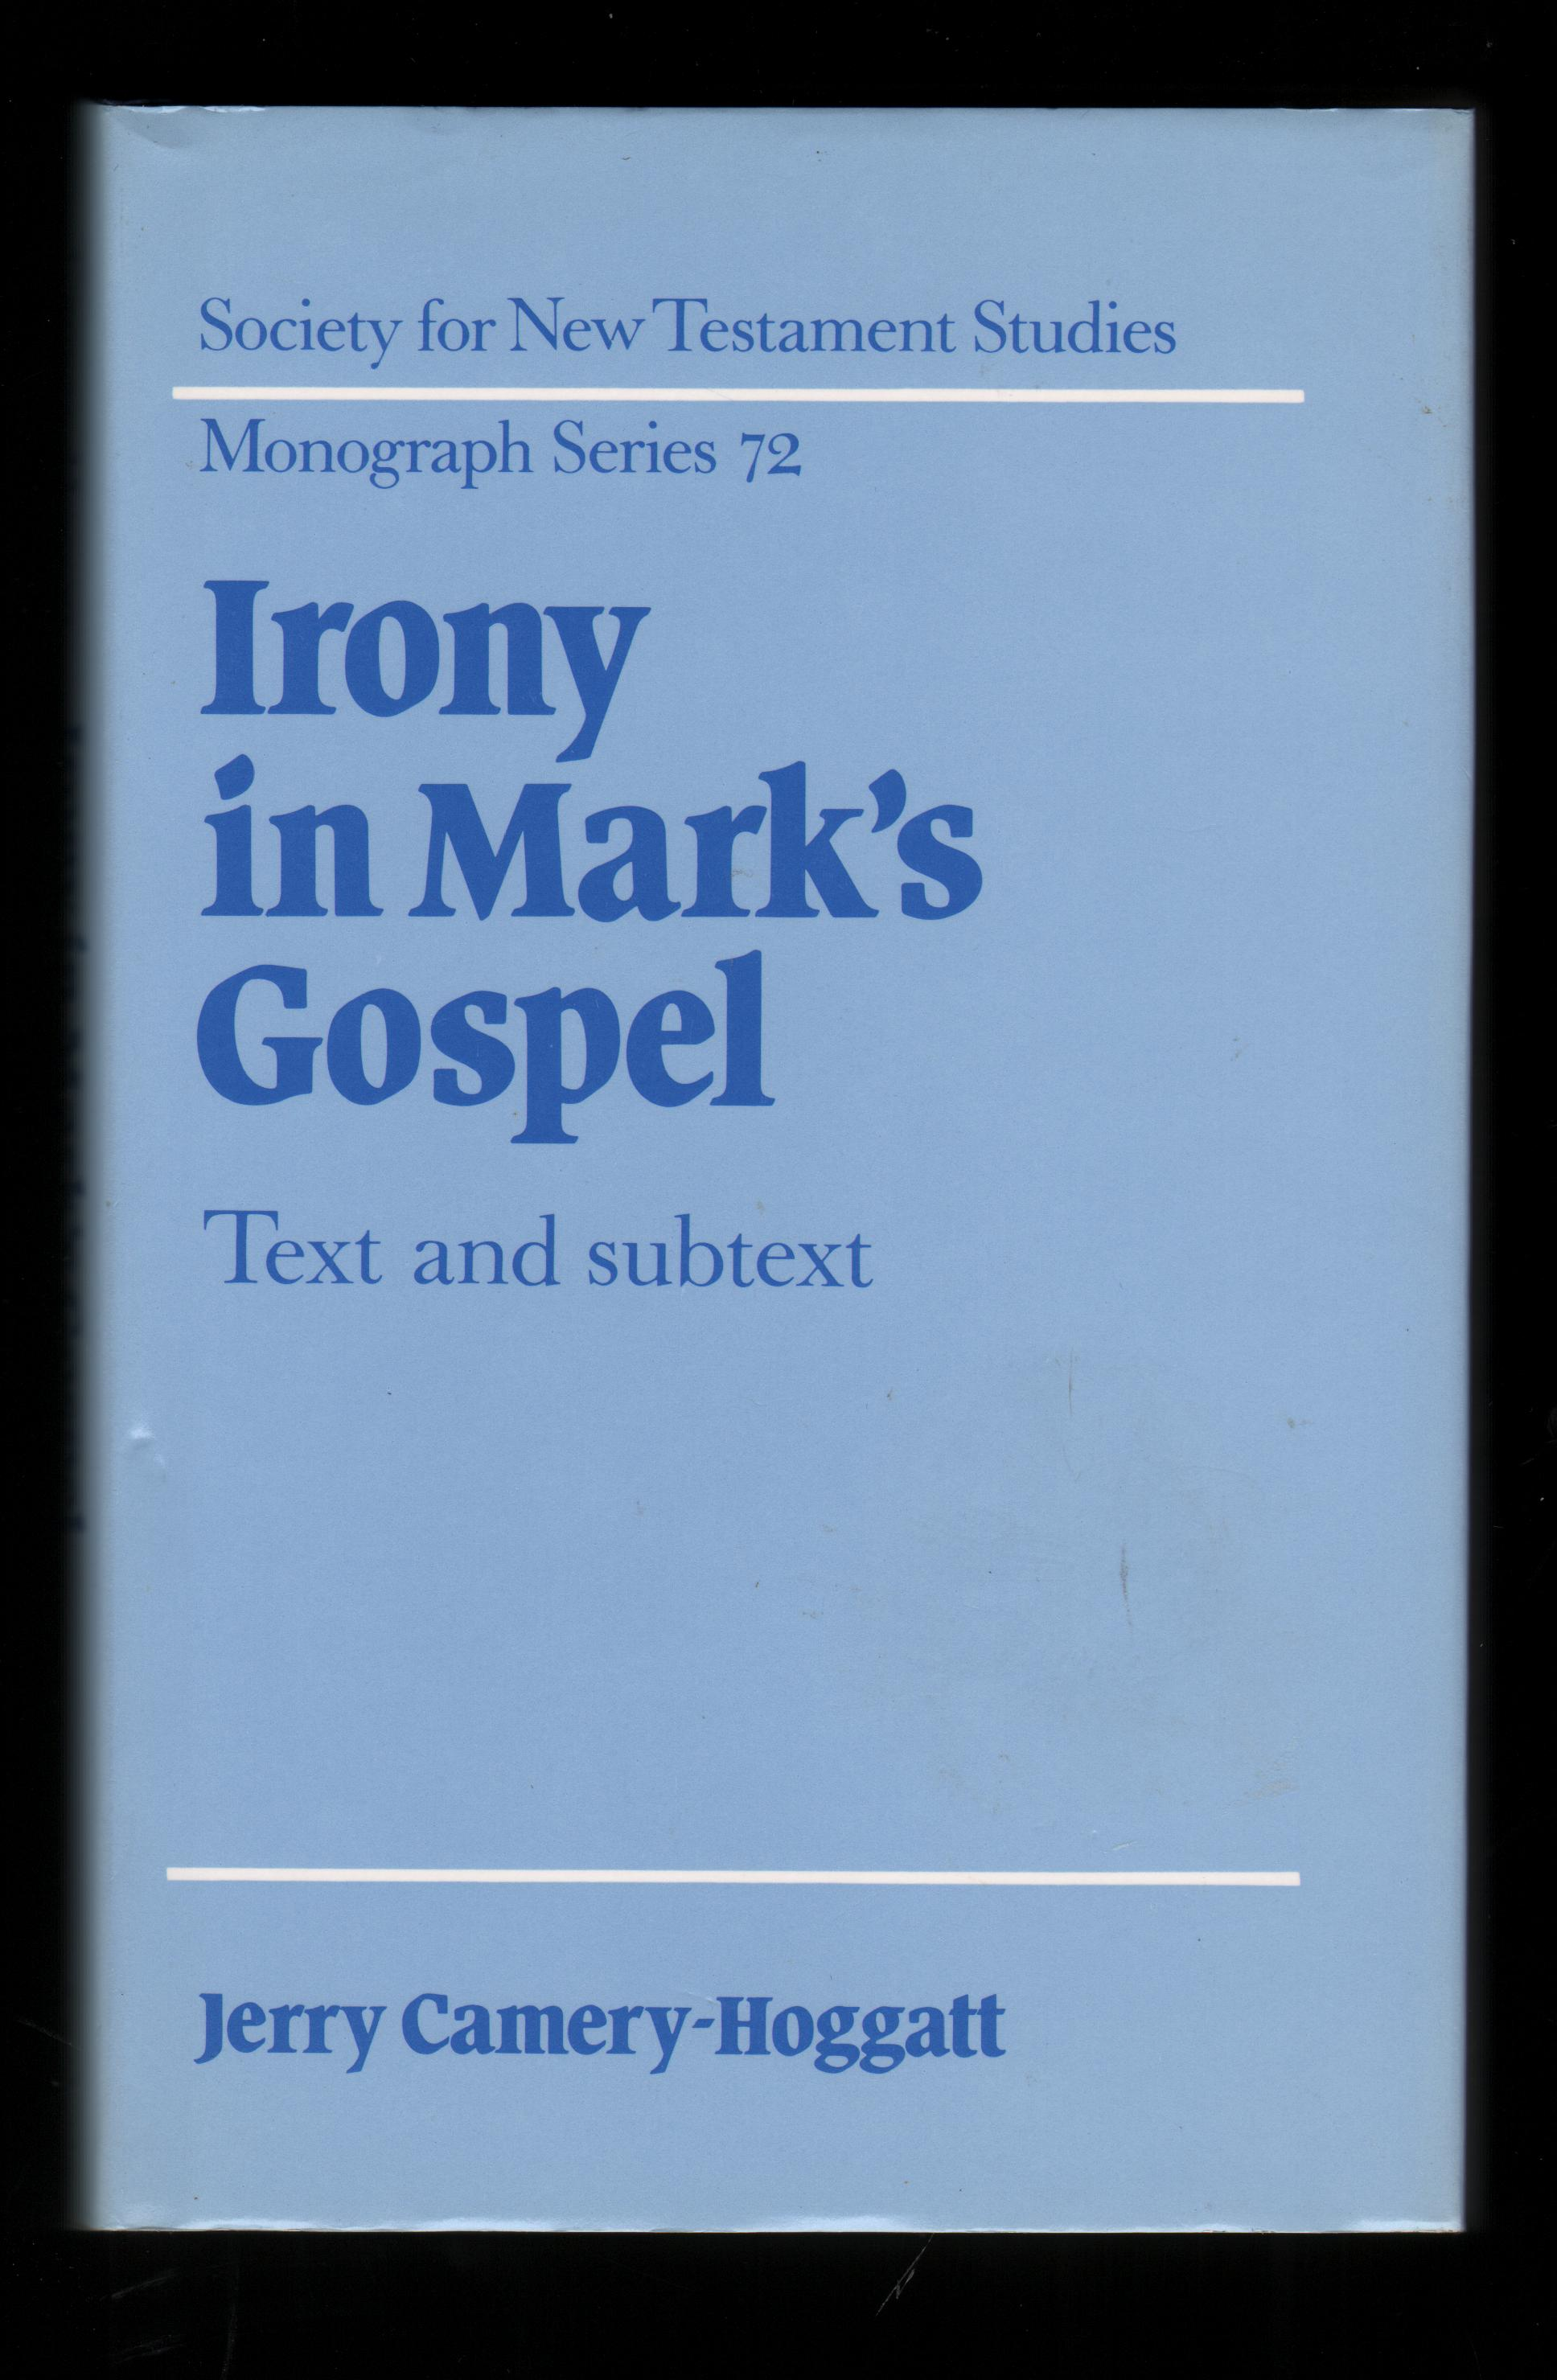 Image for Irony in Mark's Gospel. Text and Subtext. (Society for New Testament Studies Monograph Series 72).